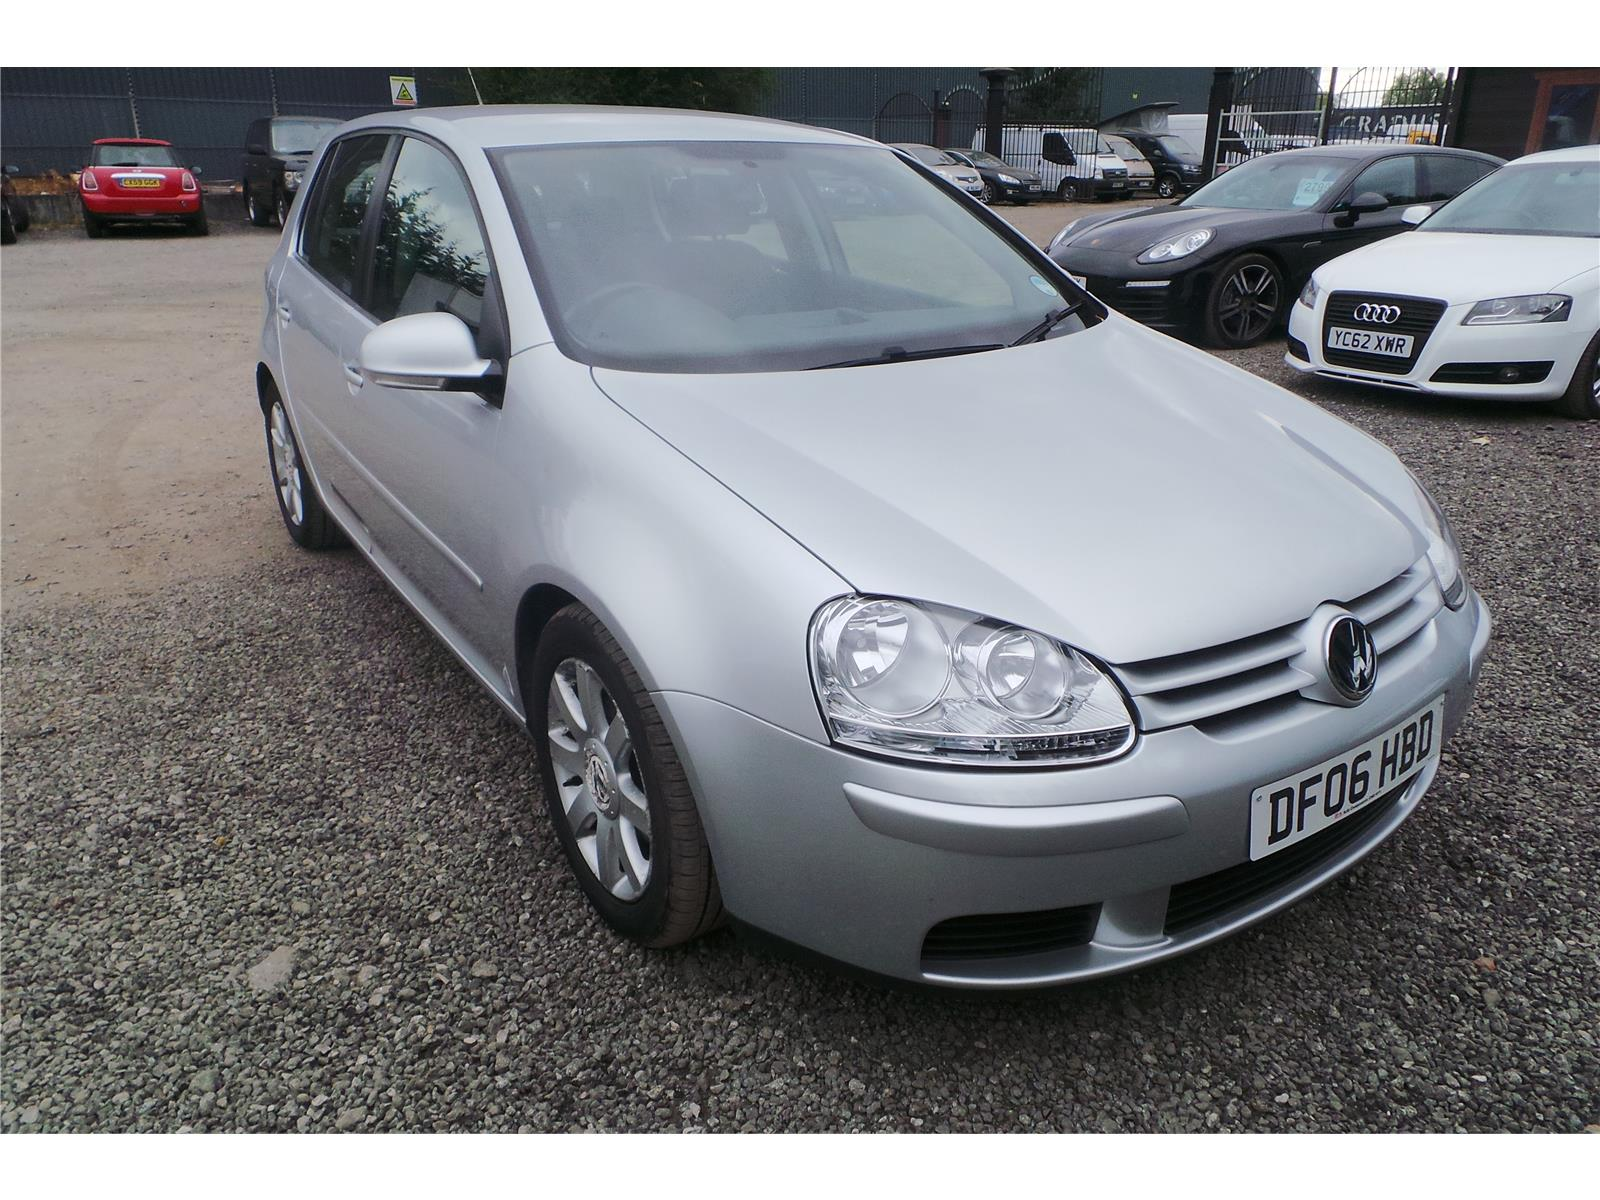 2006 Volkswagen Golf Sport 1896 Diesel Manual 6 Speed 5 Door Hatchback